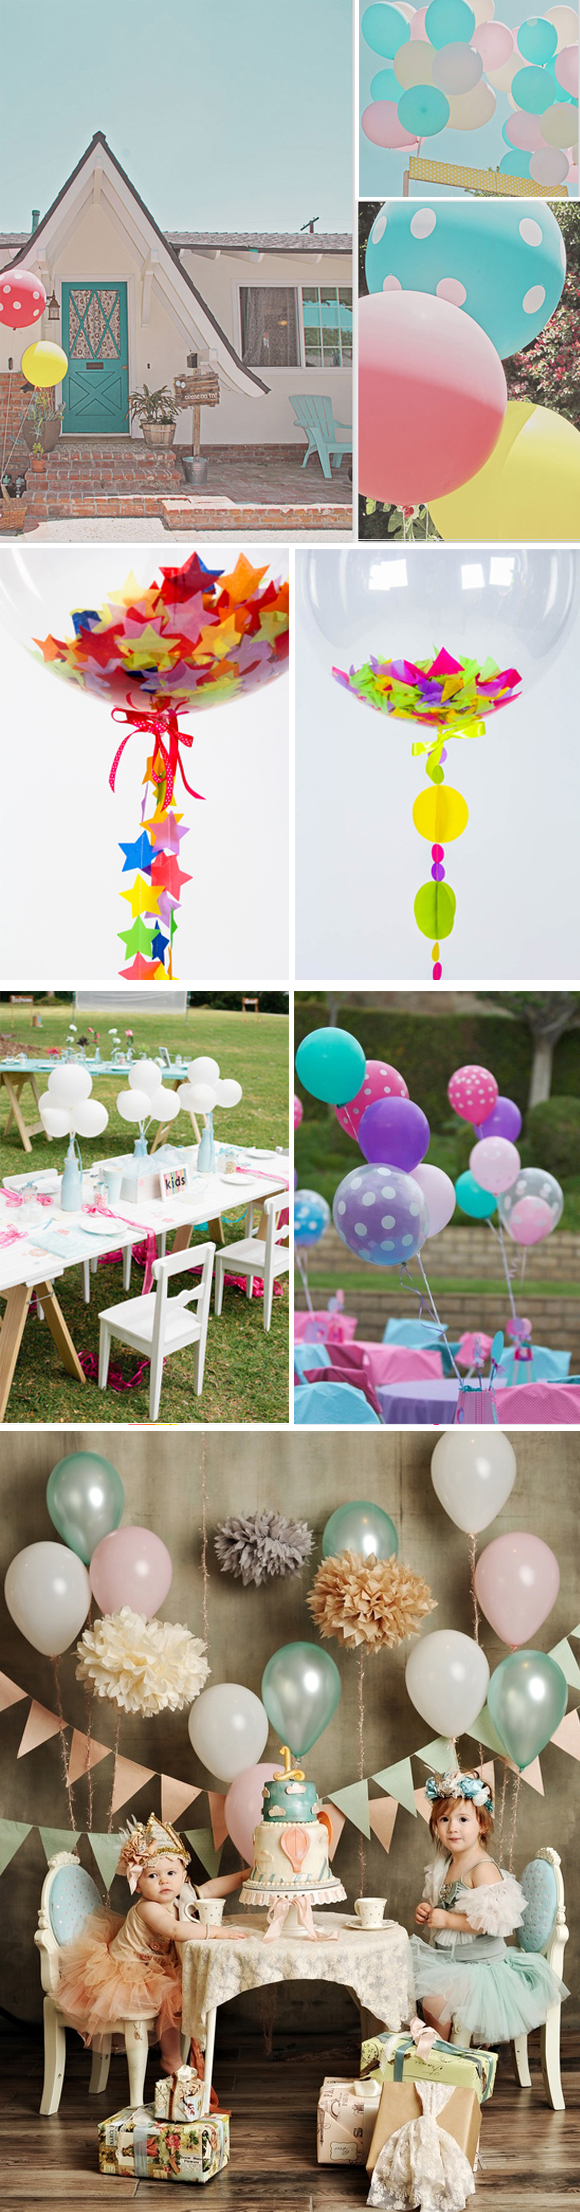 Ideas originales para decorar con globos fiestas infantiles for Fiestas ideas originales